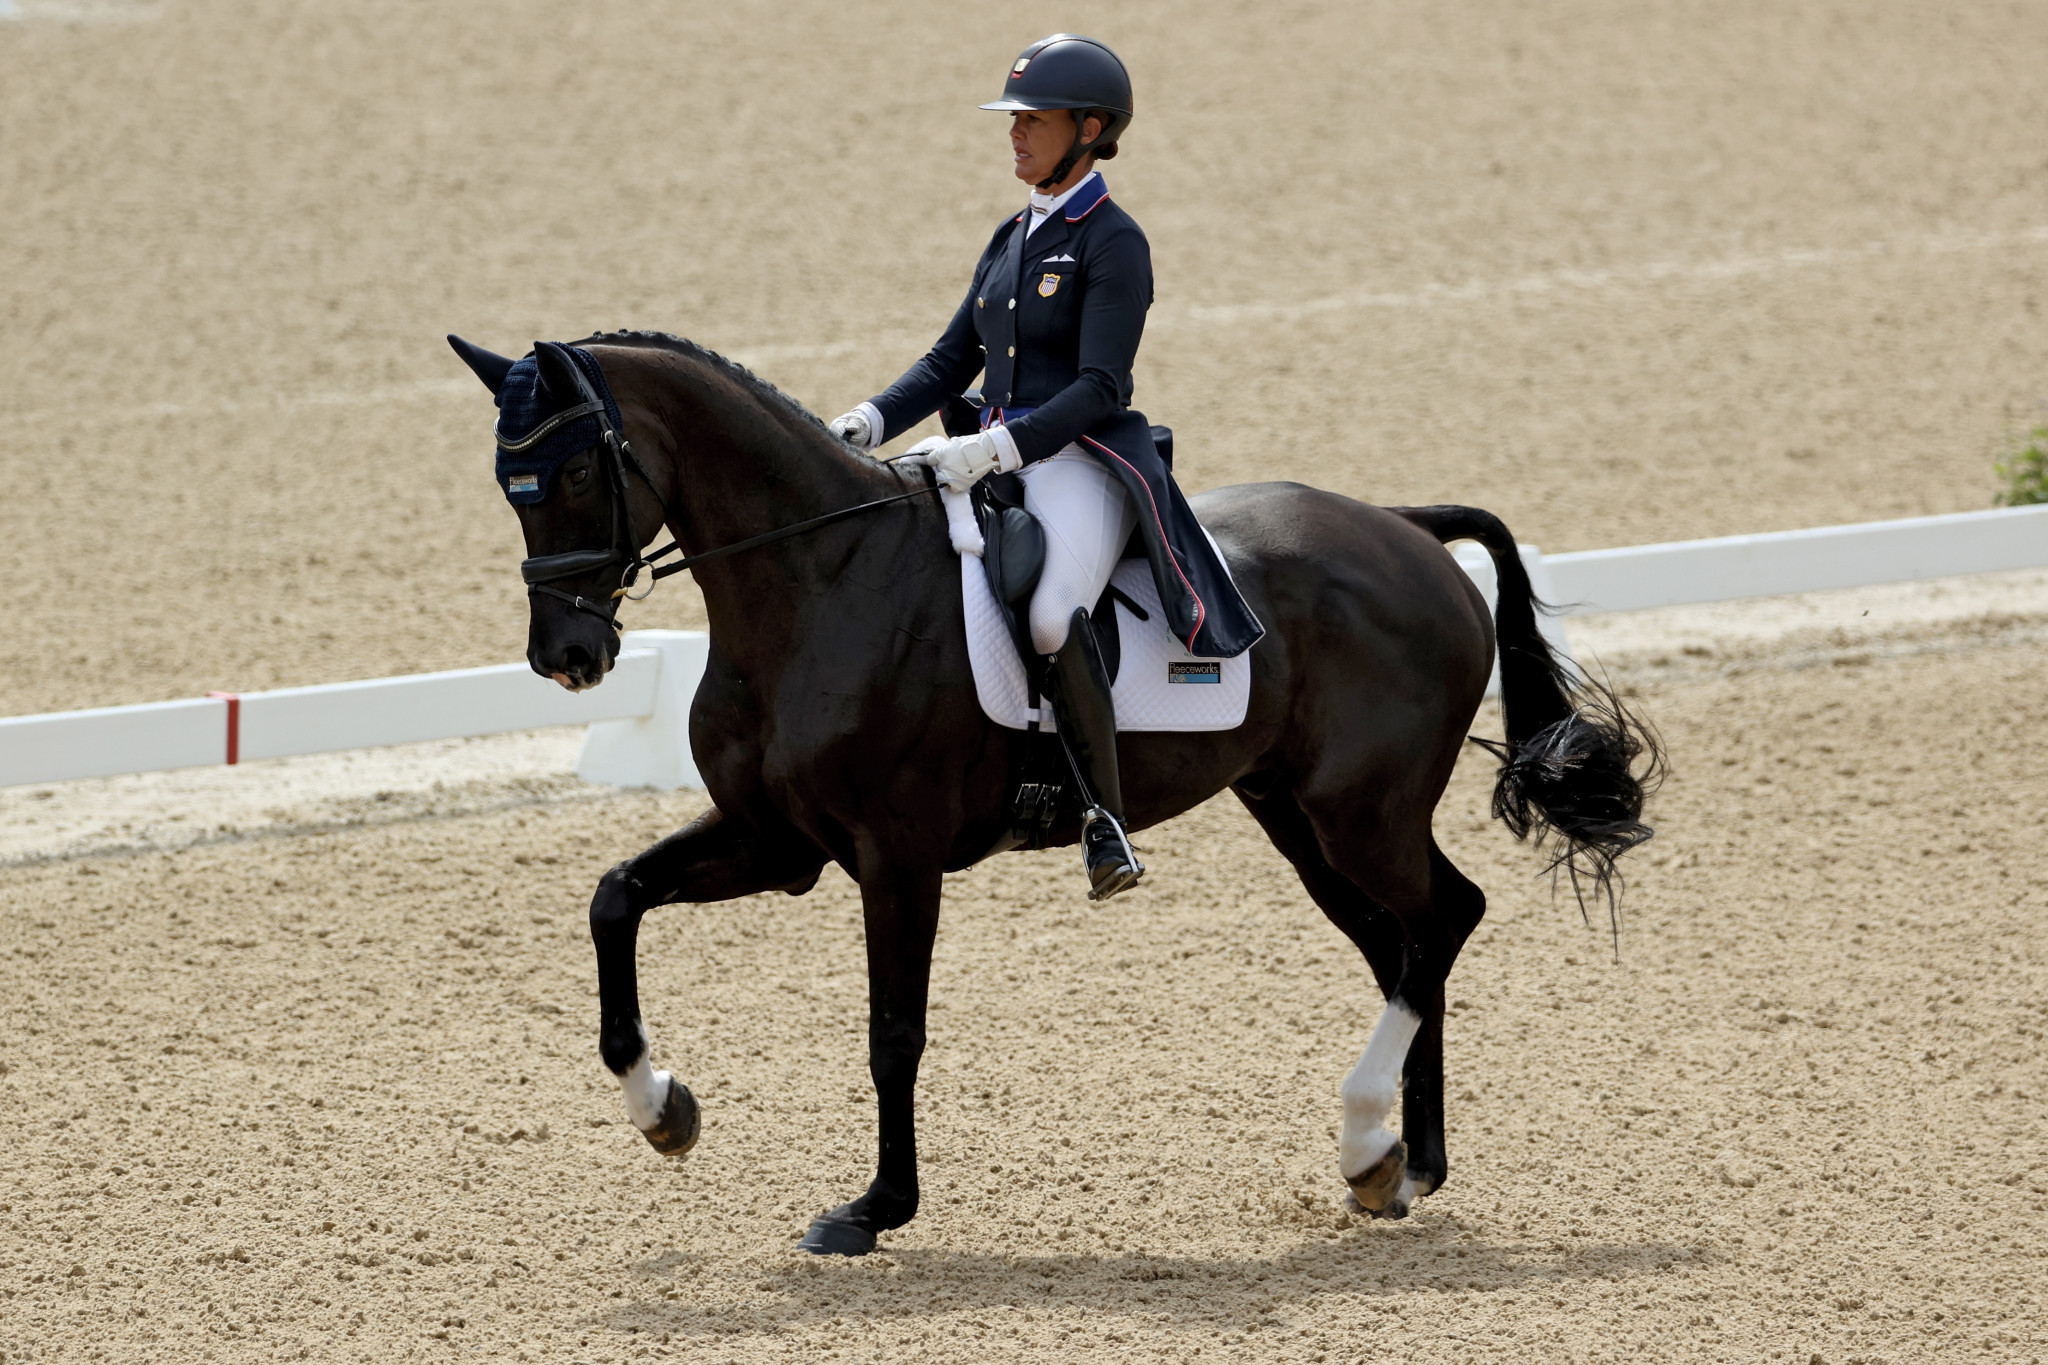 Smith dazzles in dressage to close gap on Little at Kentucky Three-Day Event